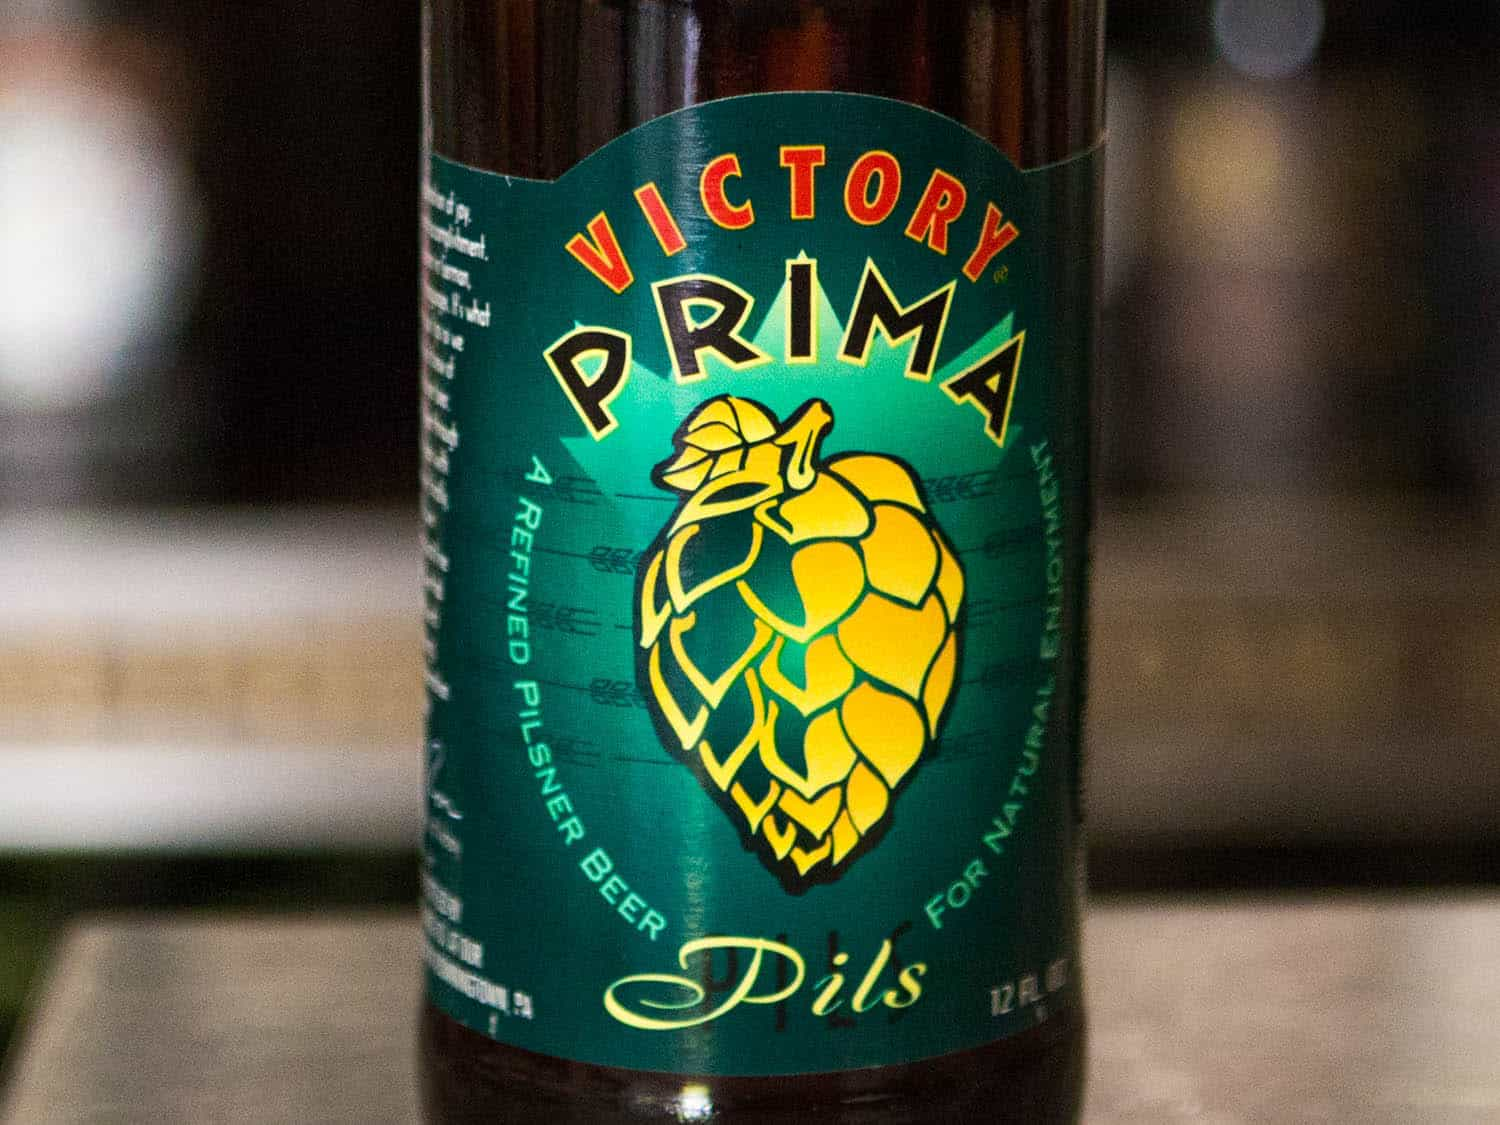 Victory Prima Pils – shower beer